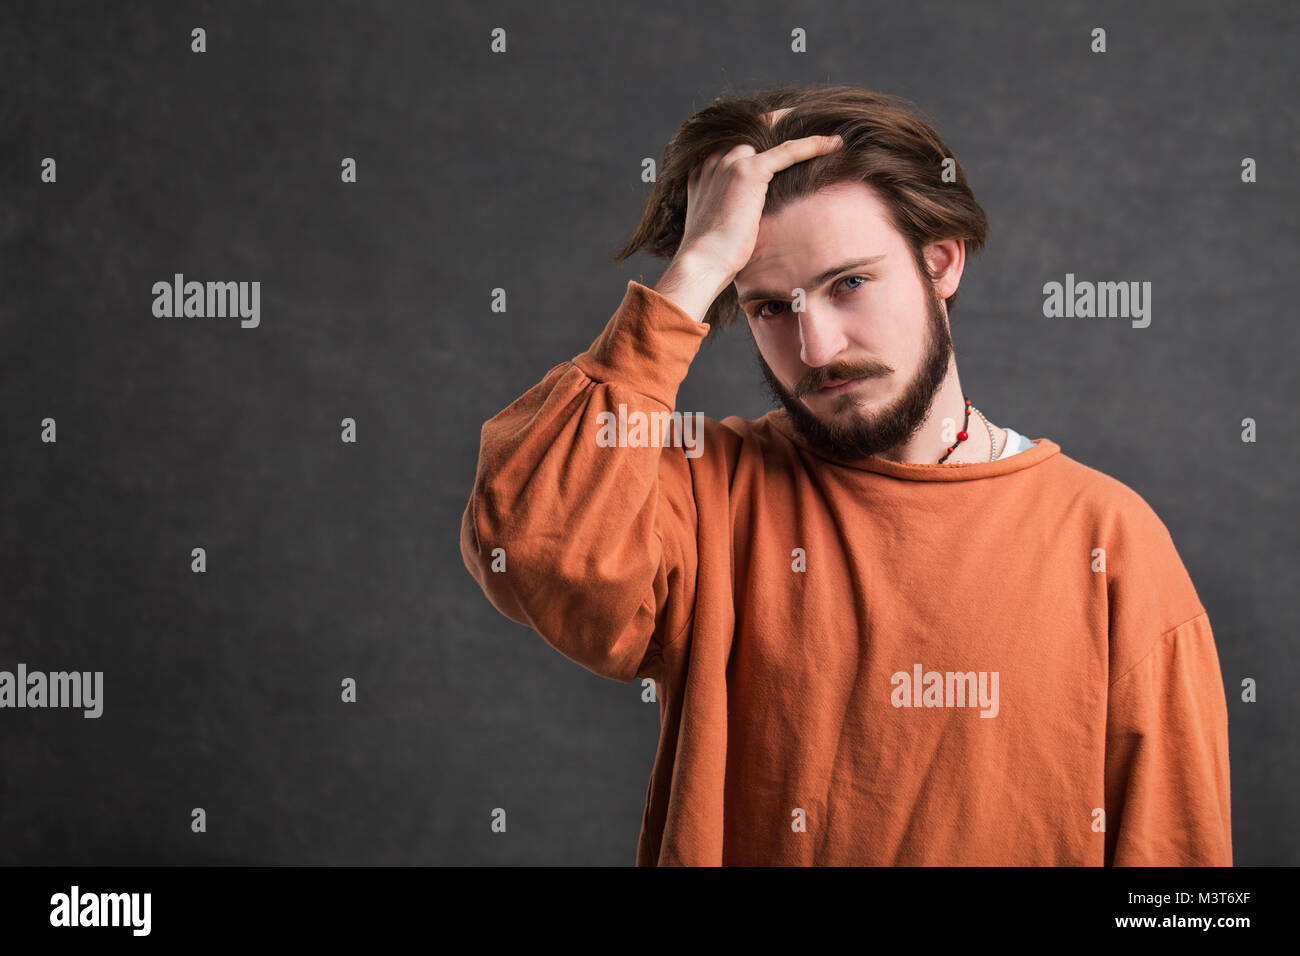 Portrait of Stressed Man - Stock Image